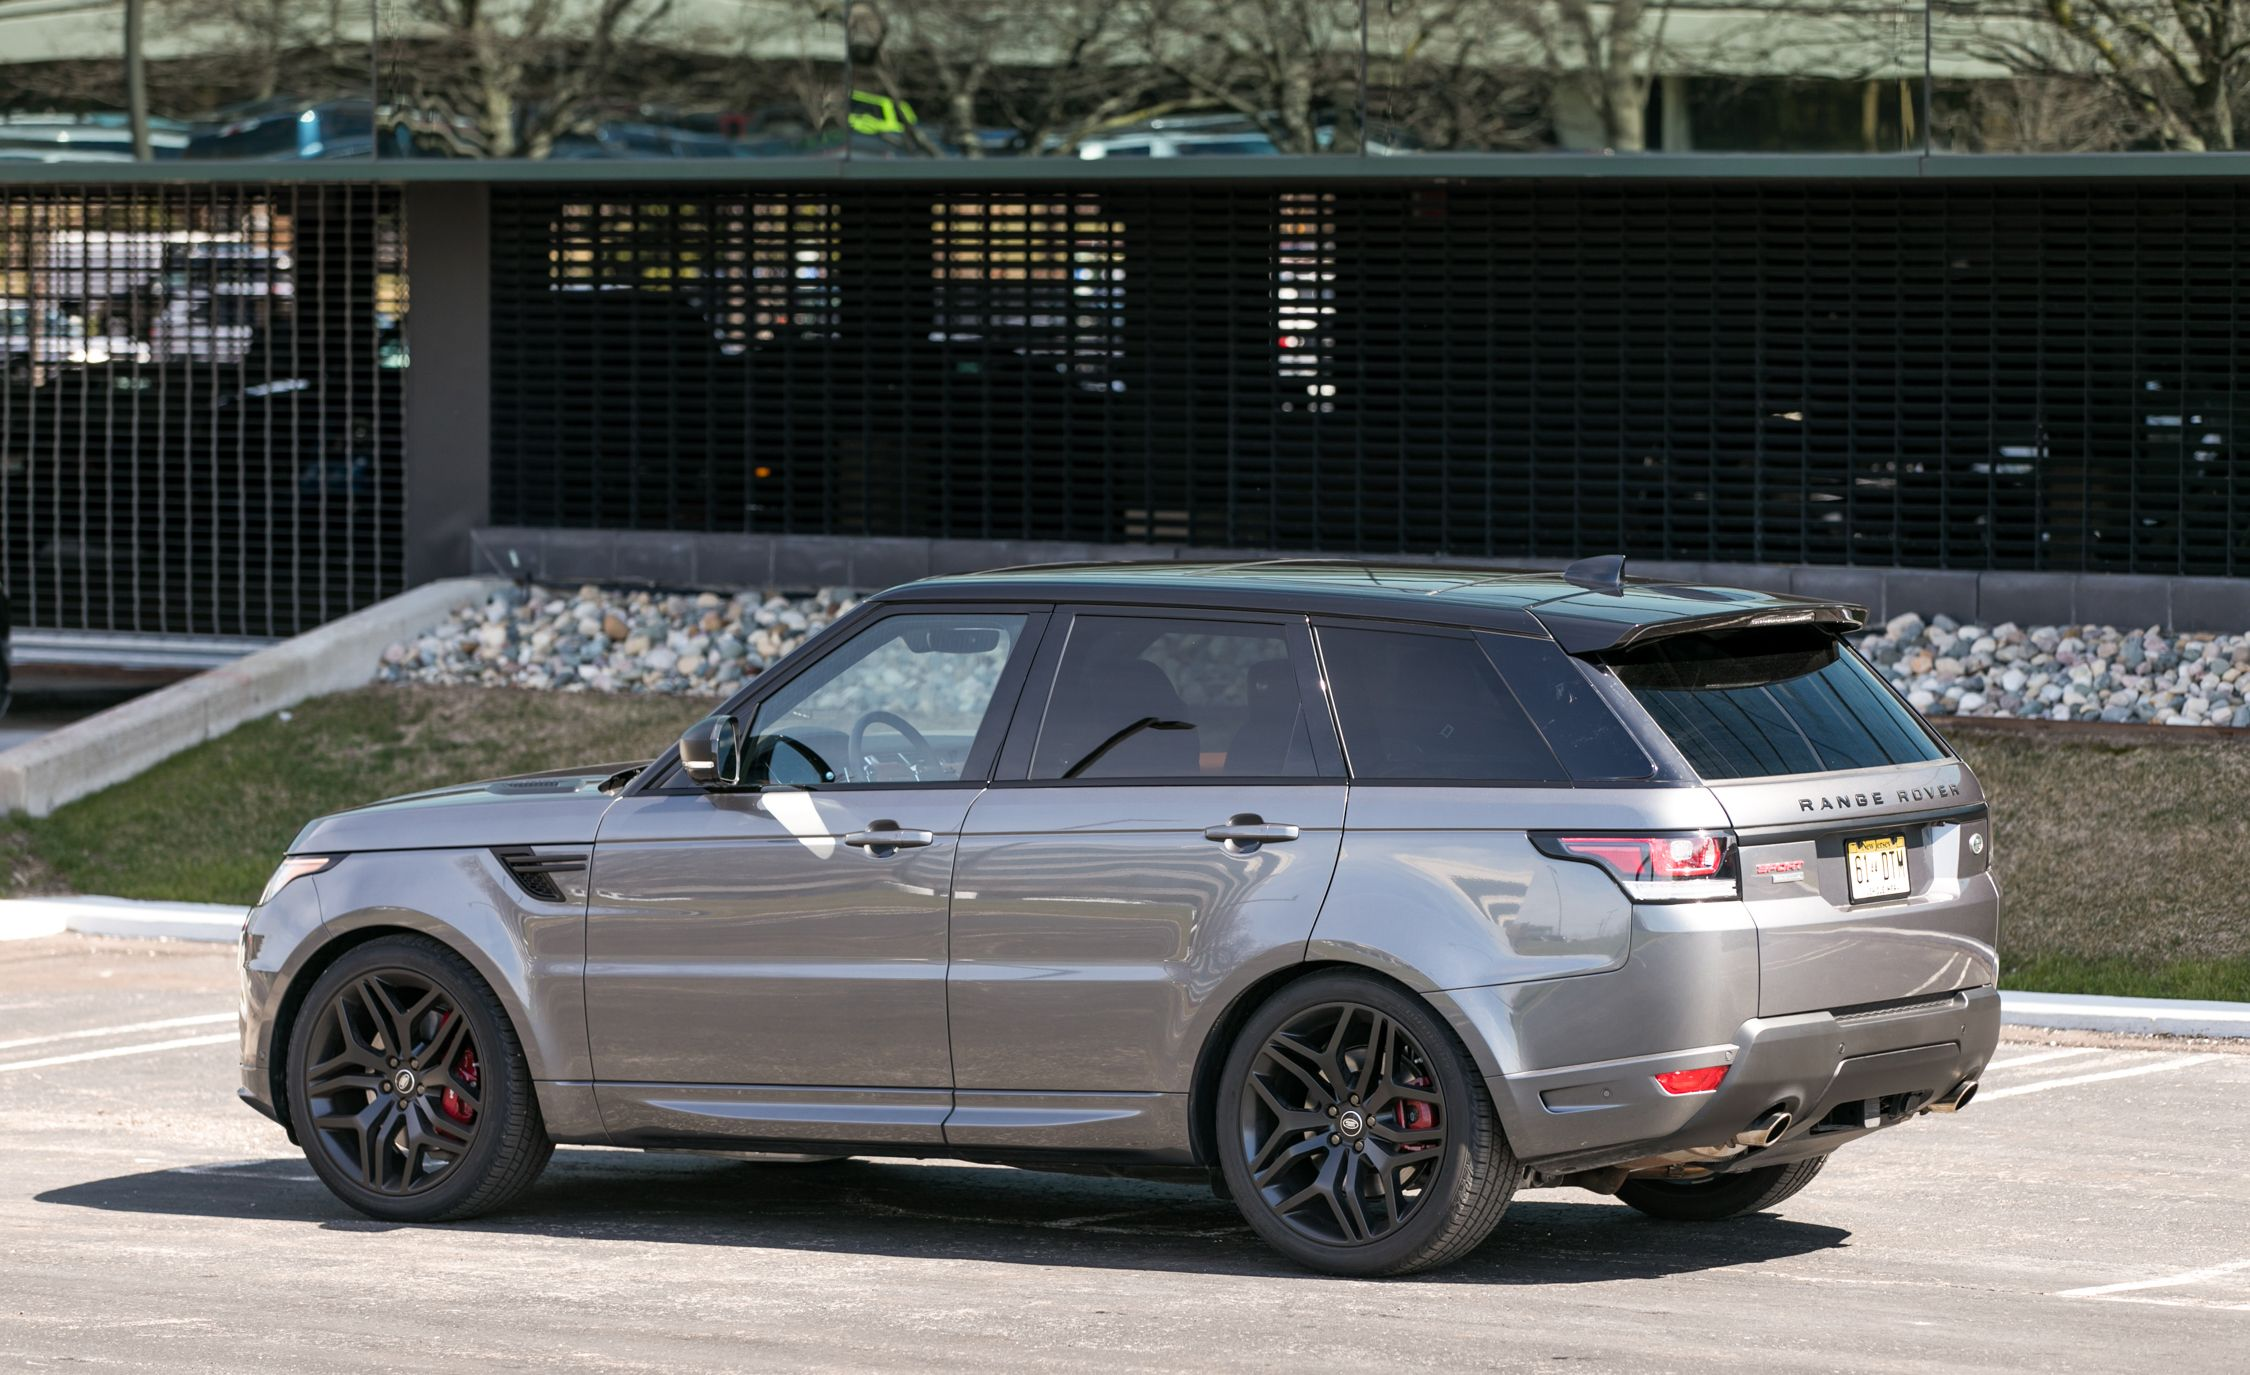 https://hips.hearstapps.com/amv-prod-cad-assets.s3.amazonaws.com/images/media/685768/2017-land-rover-range-rover-sport-supercharged-svr-warranty-review-car-and-driver-photo-685833-s-original.jpg